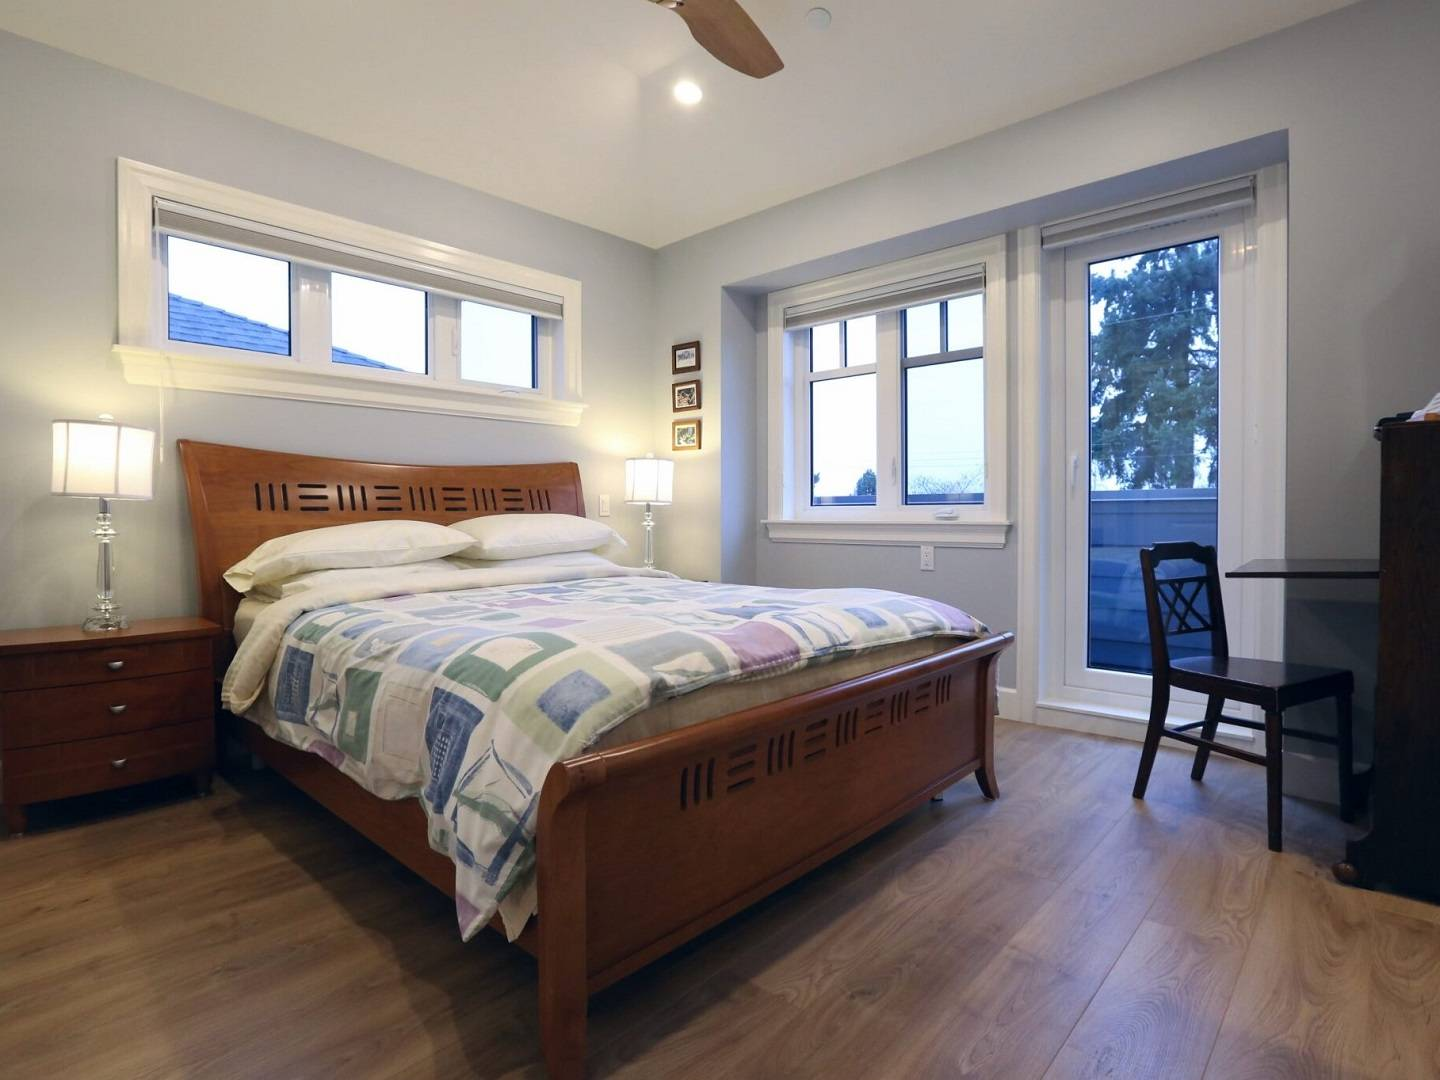 A bedroom with a bed and a window at A Vancouver Traveller Bed and Breakfast.